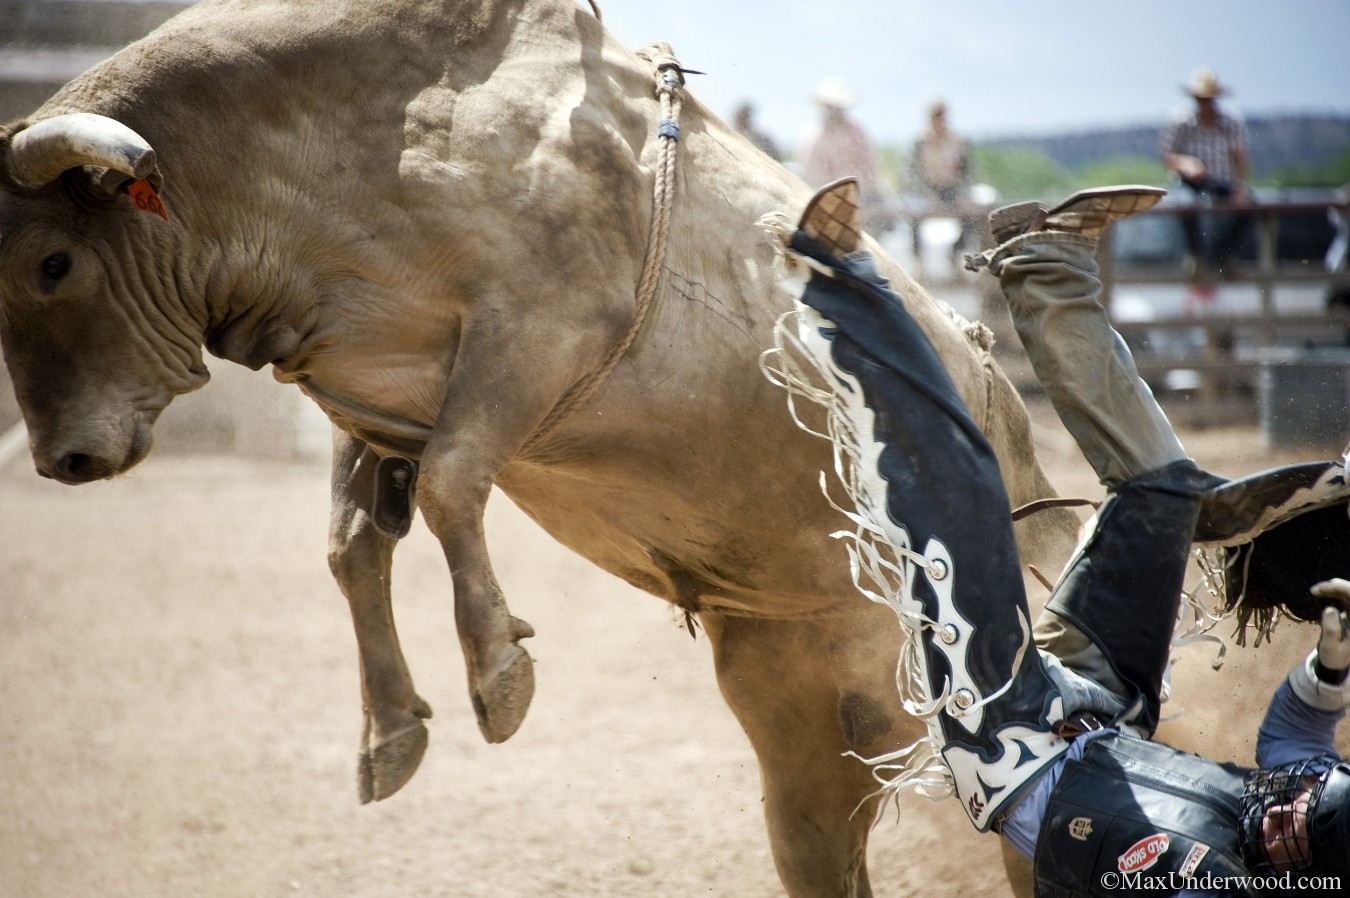 Rodeo de Galisteo, New Mexico, 2013. Bull riding, bull bucking. Action photography, Sport photography.